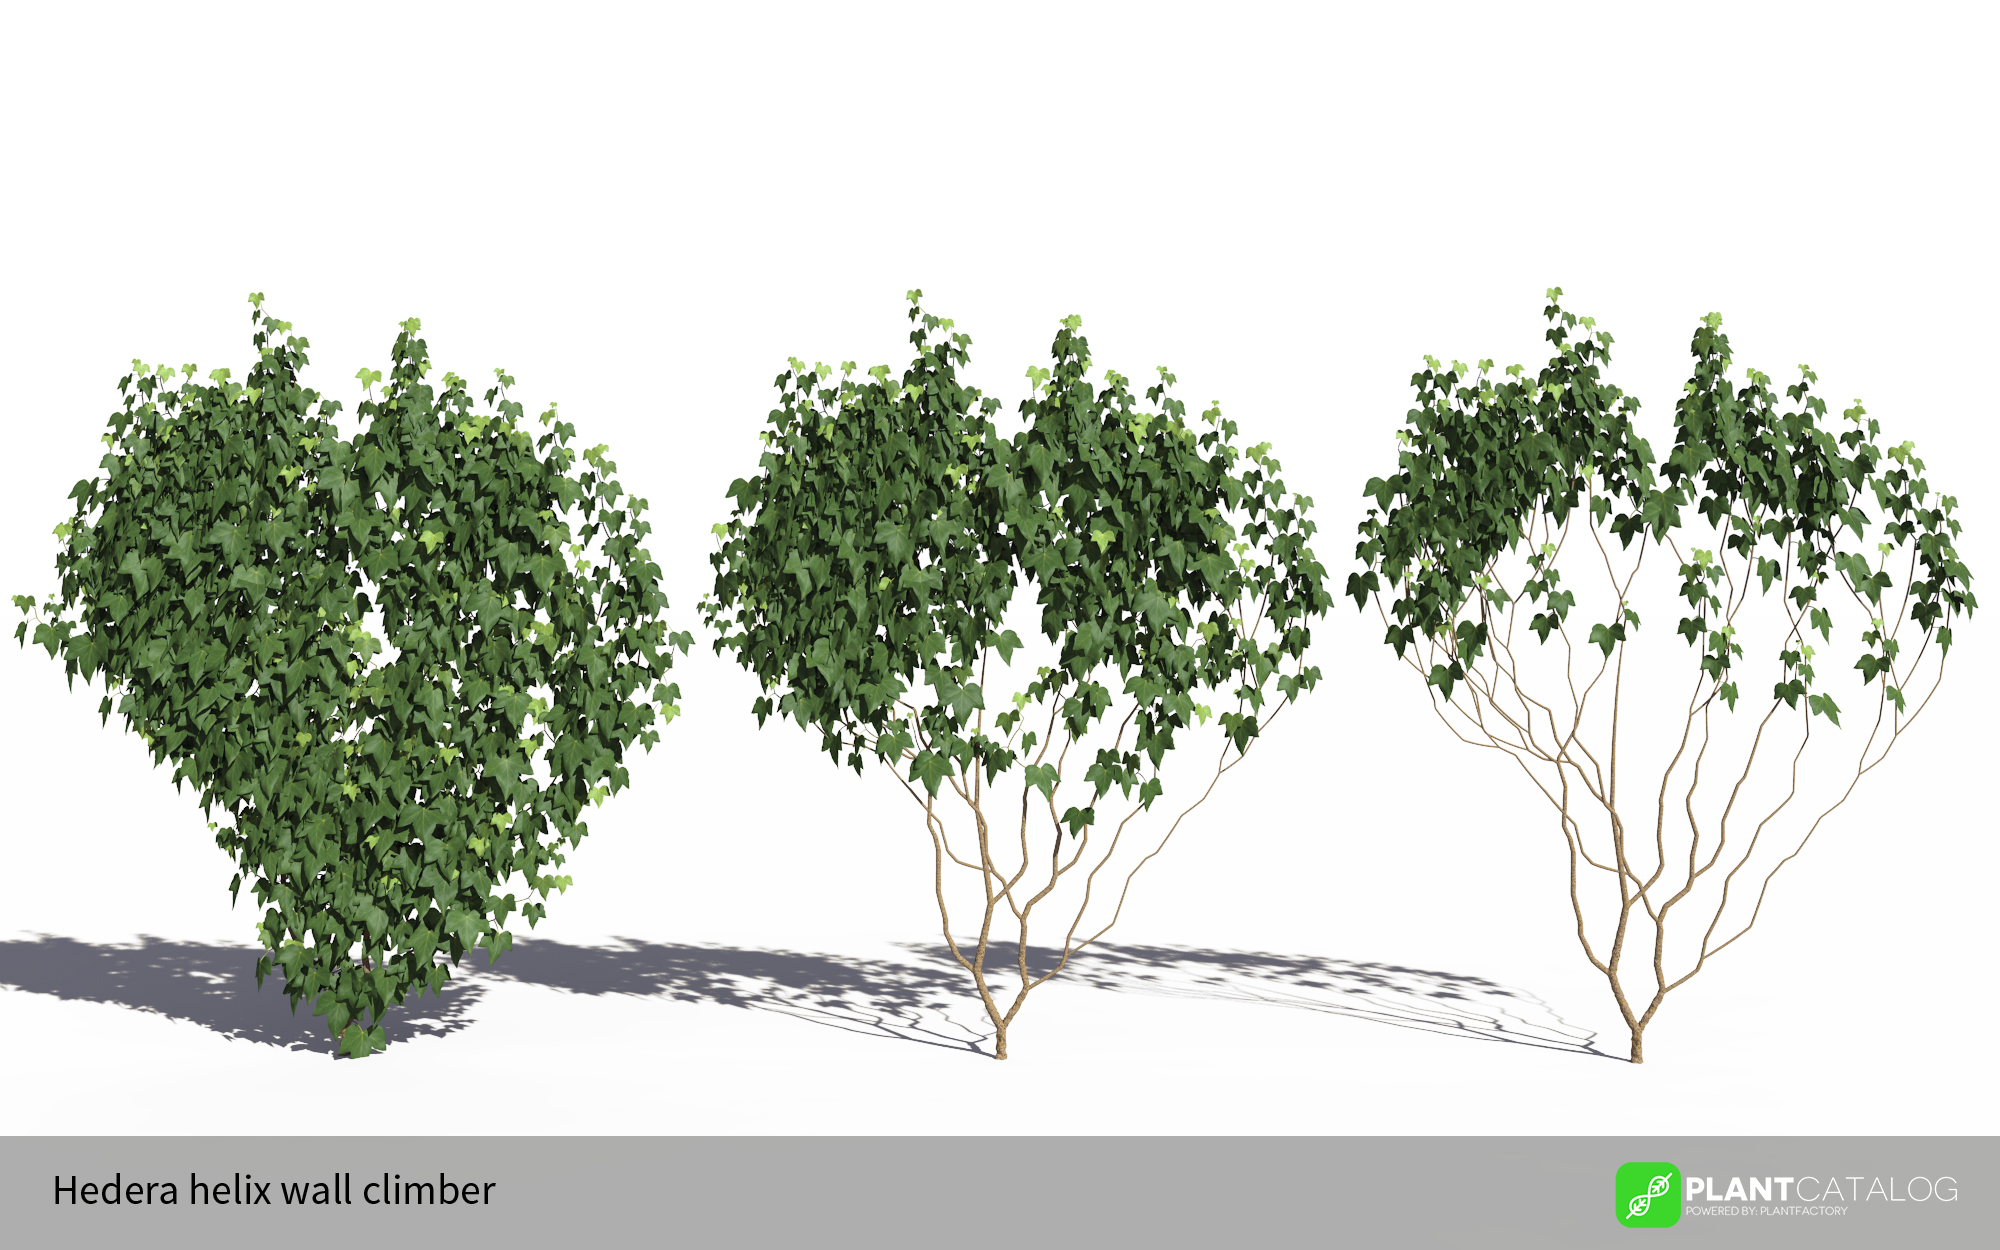 3D model of the Green ivy wall climber - Hedera helix wall climber green - from the PlantCatalog, rendered in VUE